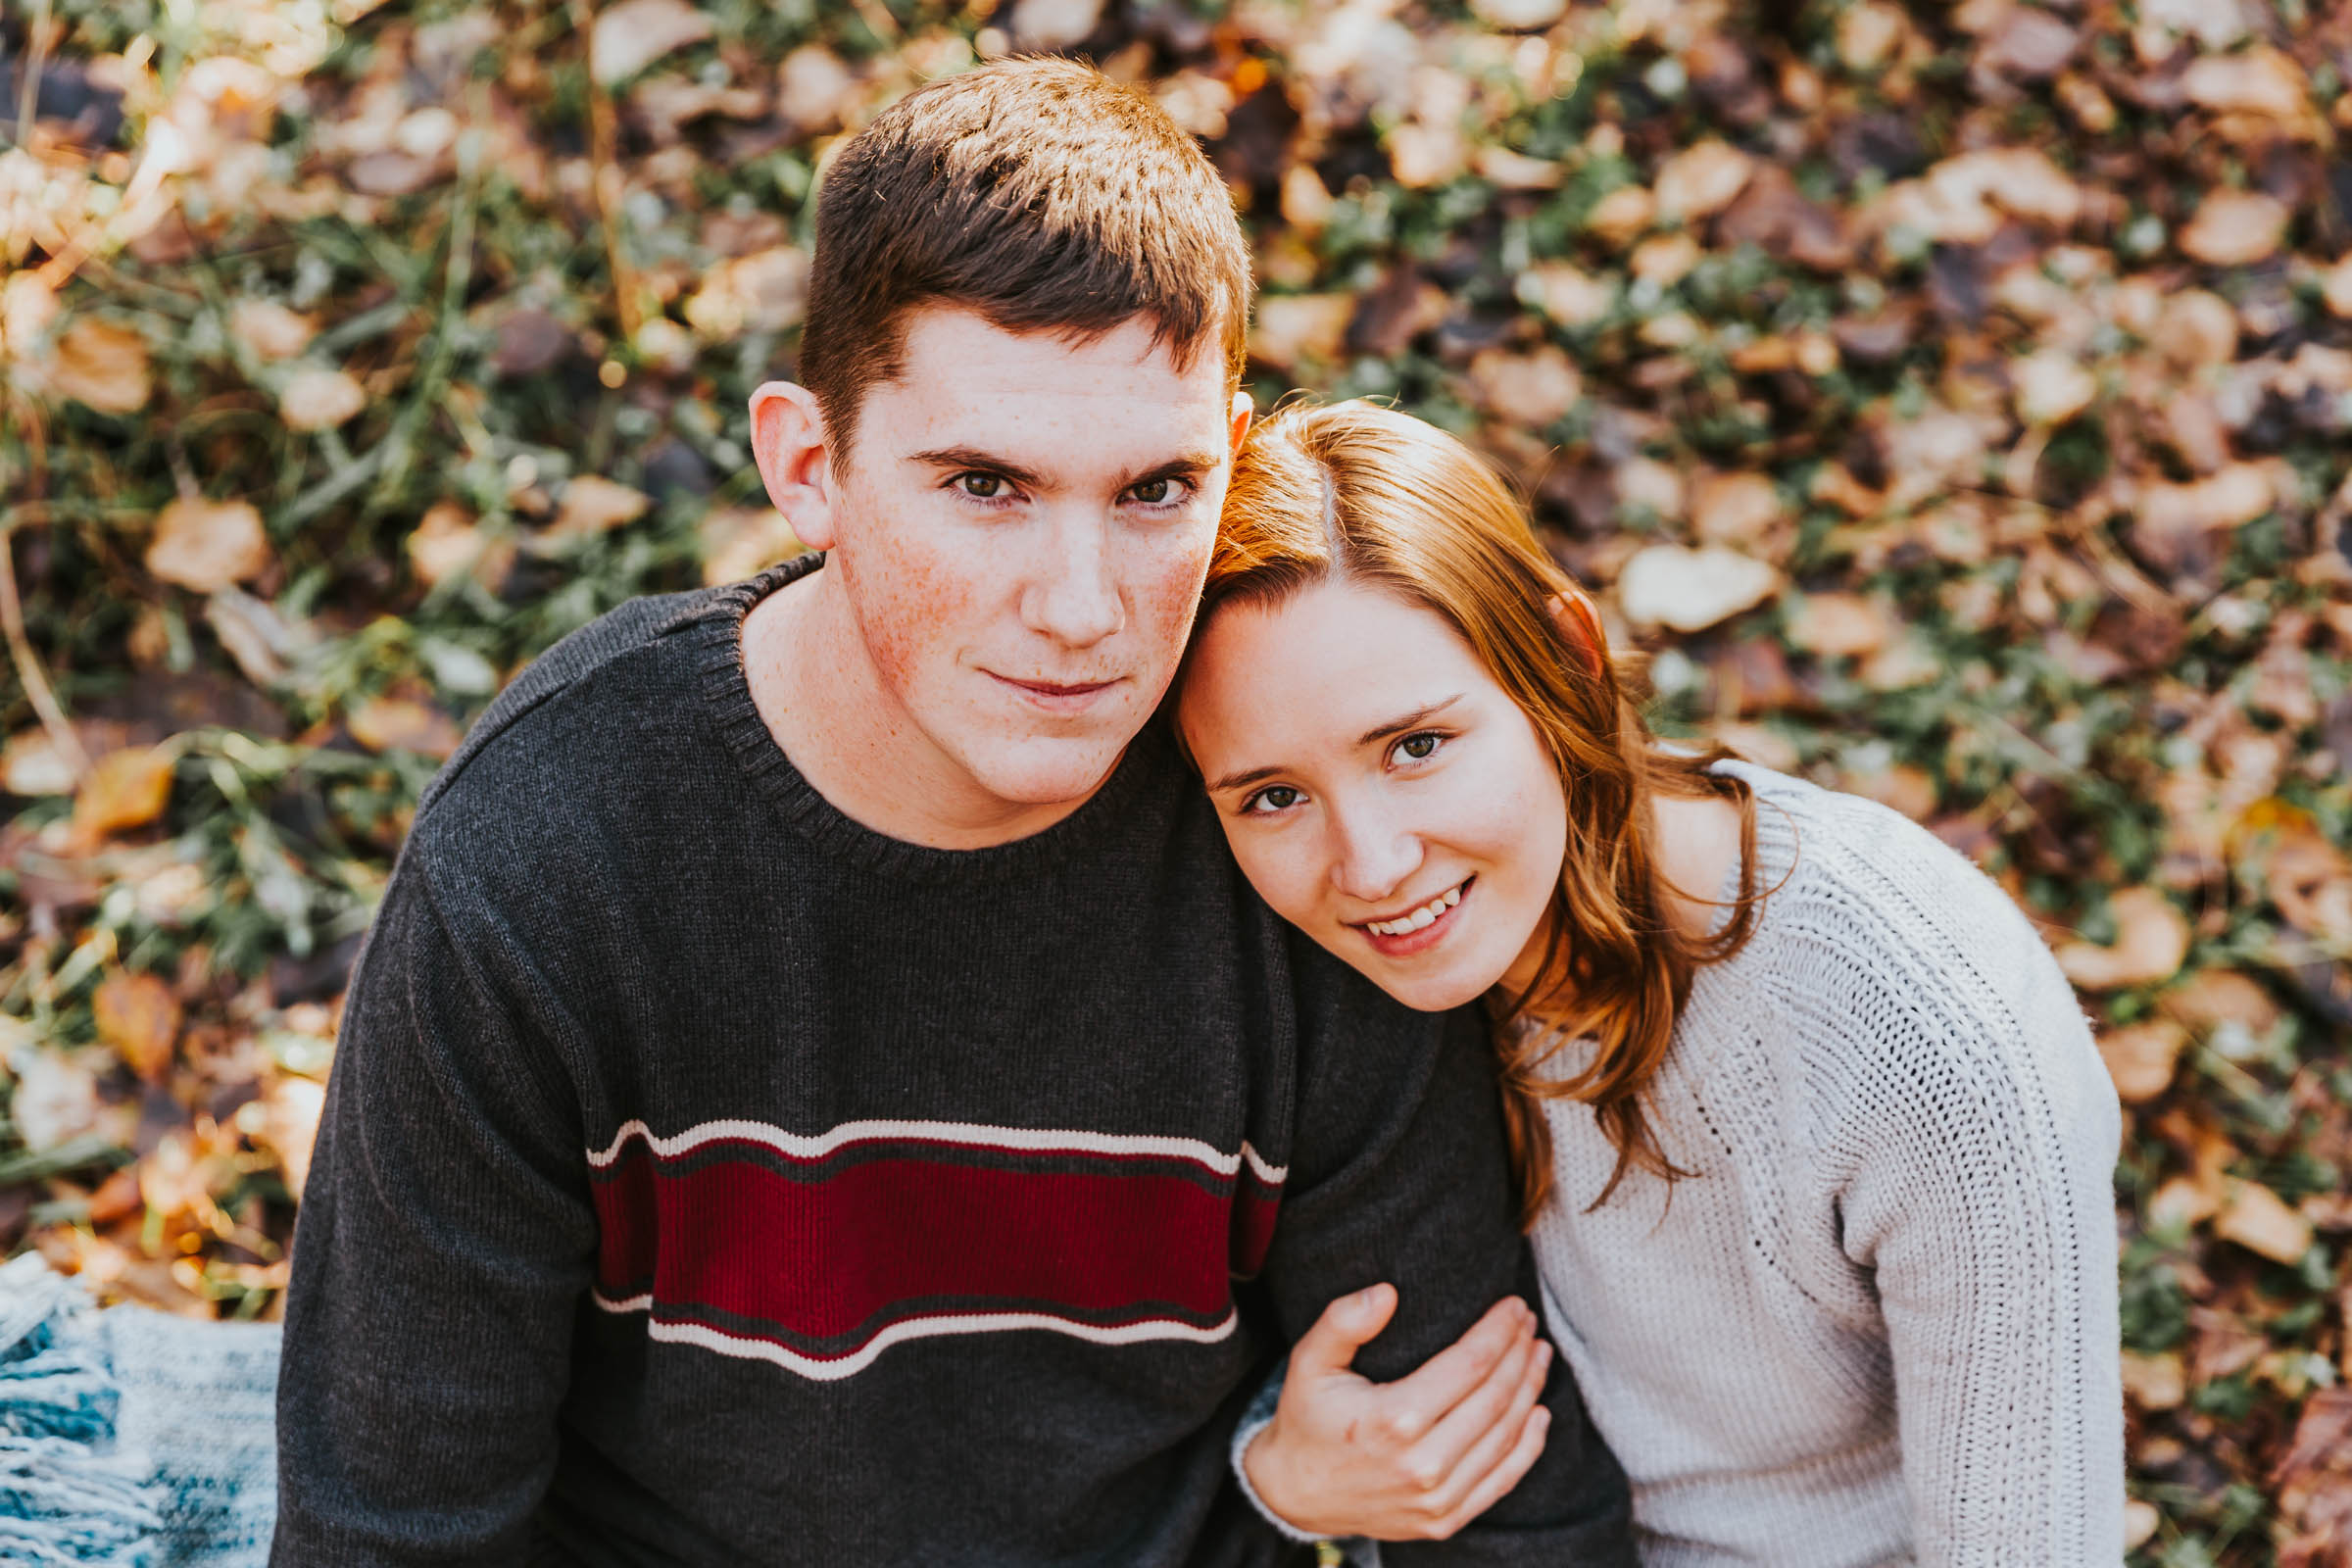 0129_meganforbes_engagement_October 20, 2016.jpg